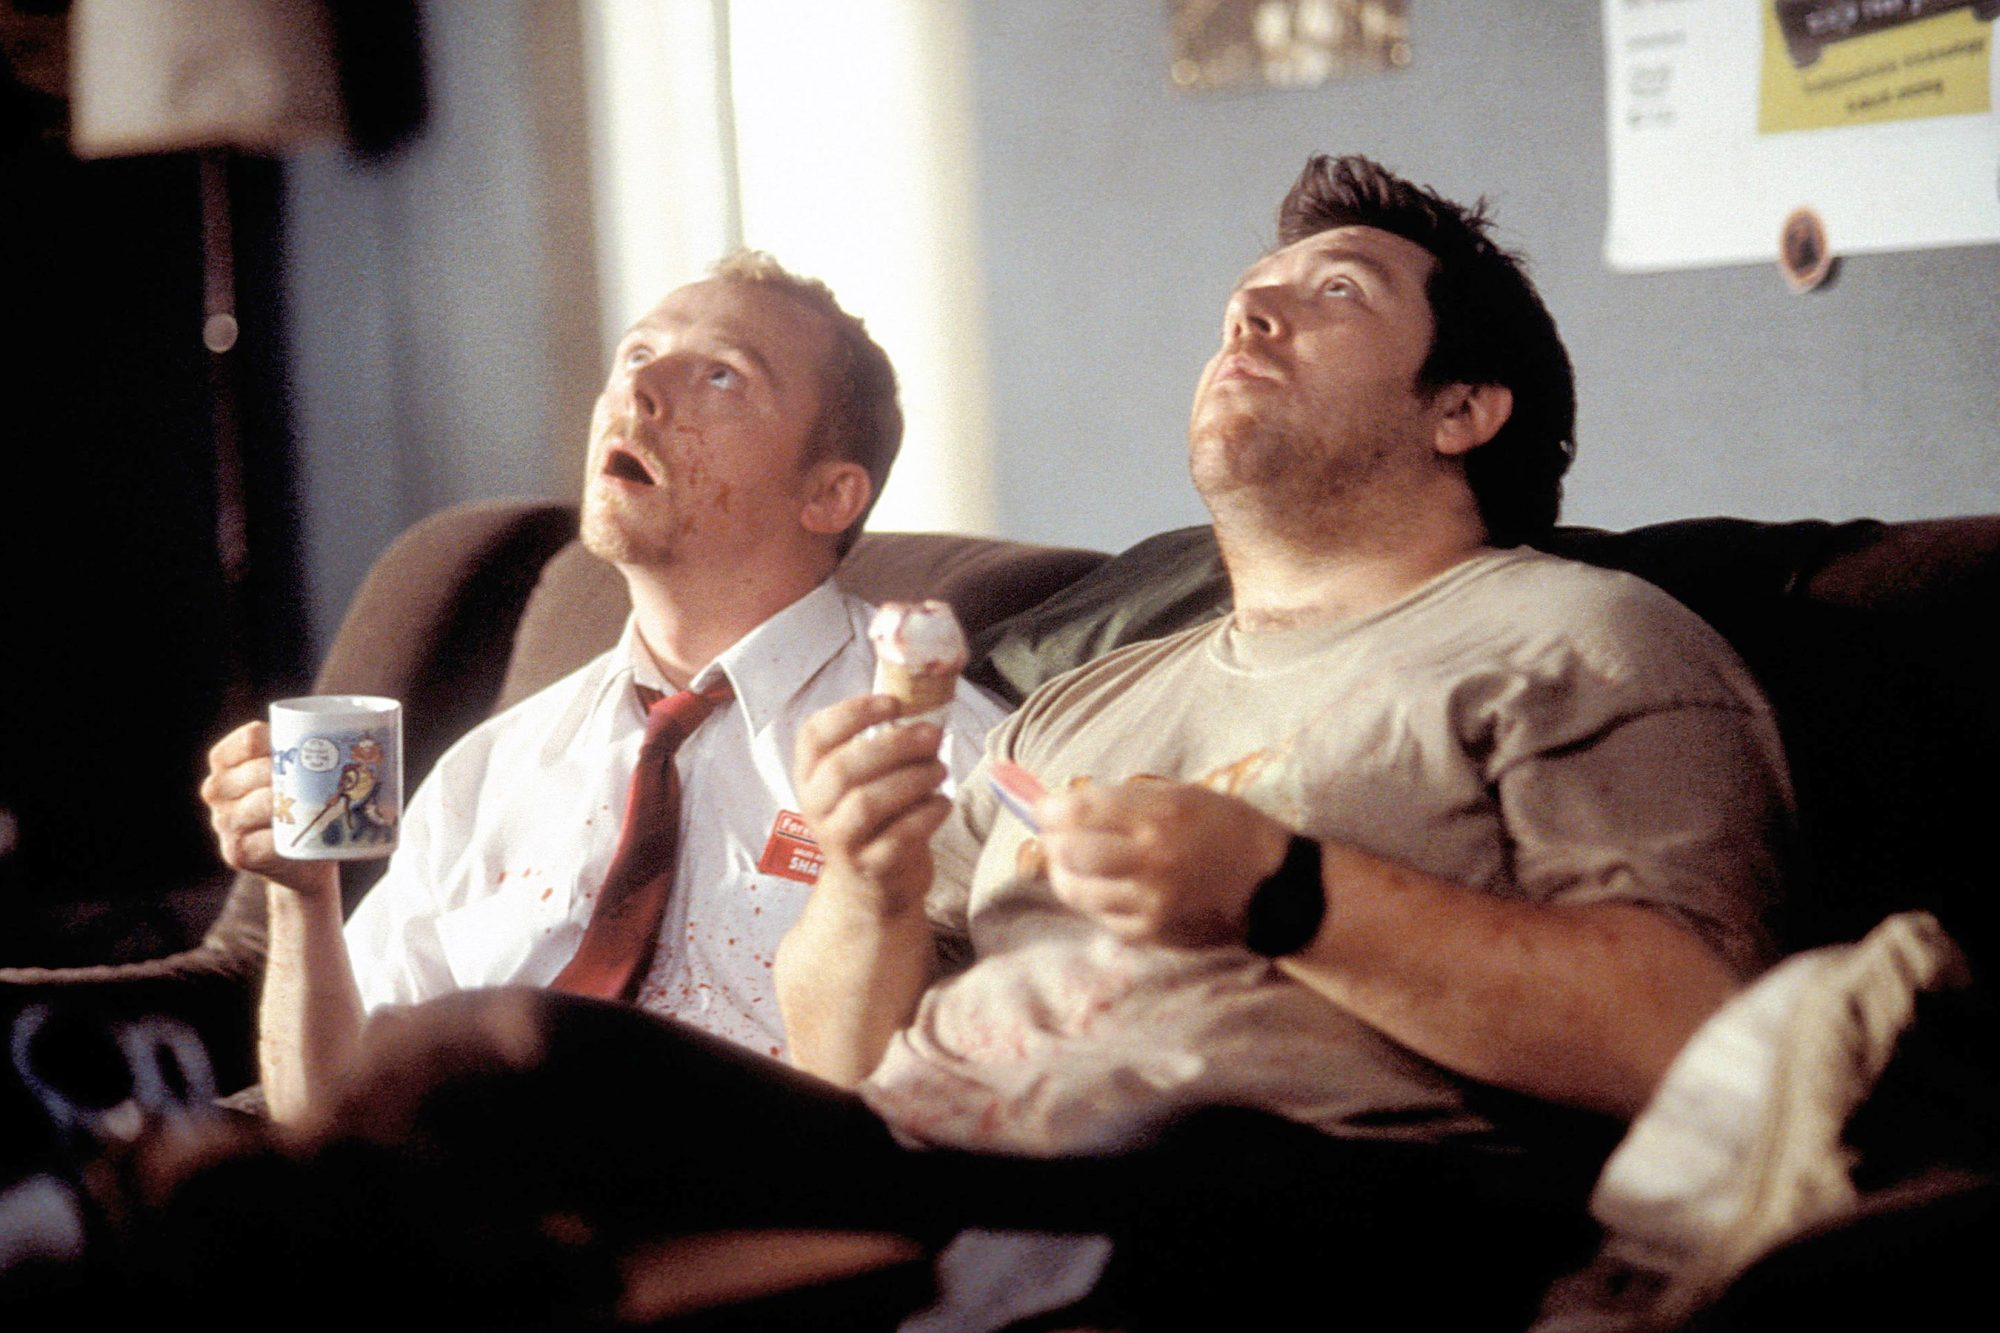 SHAUN OF THE DEAD, Simon Pegg, Nick Frost, 2004, (c) Rogue Pictures/courtesy Everett Collection